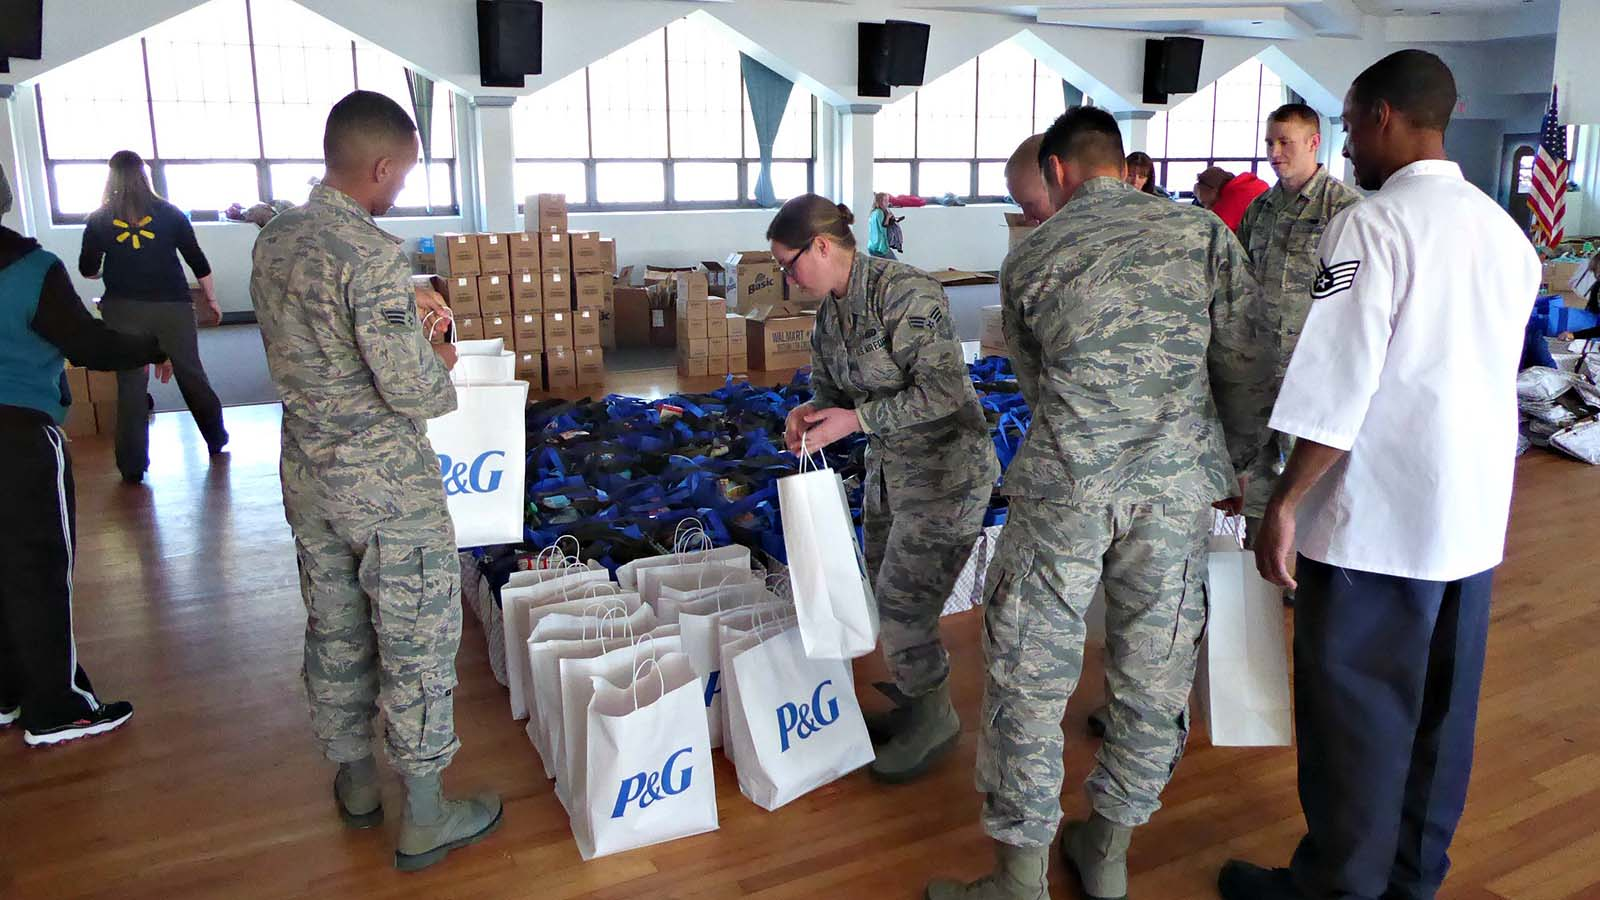 Several service members picking up P&G bags of food during a Holiday Meals for Military event.